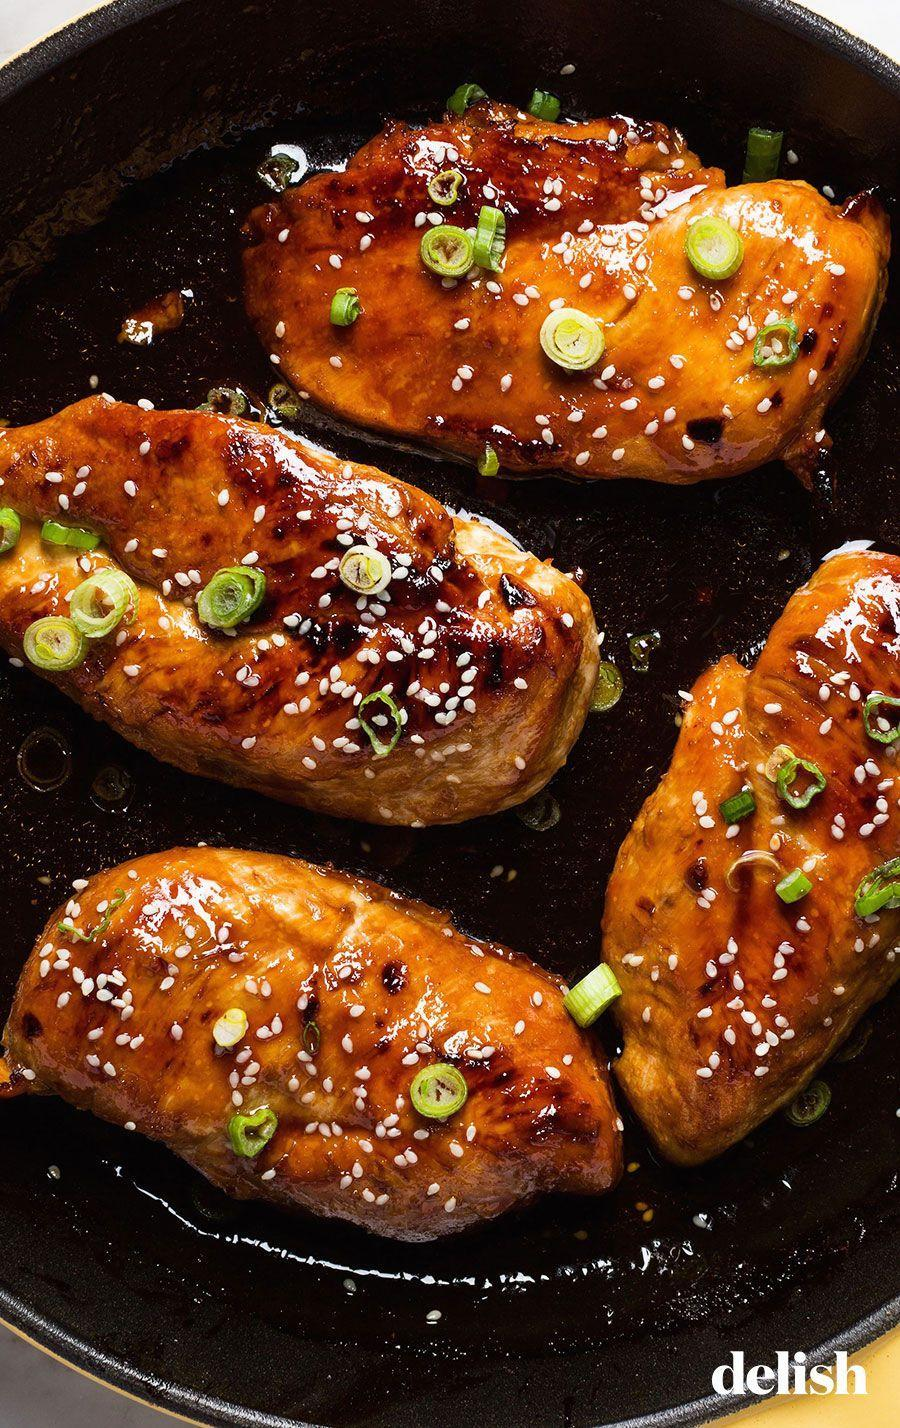 """<p>This healthy recipe is absolutely idiot proof.</p><p>Get the recipe from <a href=""""https://www.delish.com/cooking/recipe-ideas/recipes/a49507/honey-garlic-chicken-recipe/"""" rel=""""nofollow noopener"""" target=""""_blank"""" data-ylk=""""slk:Delish"""" class=""""link rapid-noclick-resp"""">Delish</a>.</p>"""